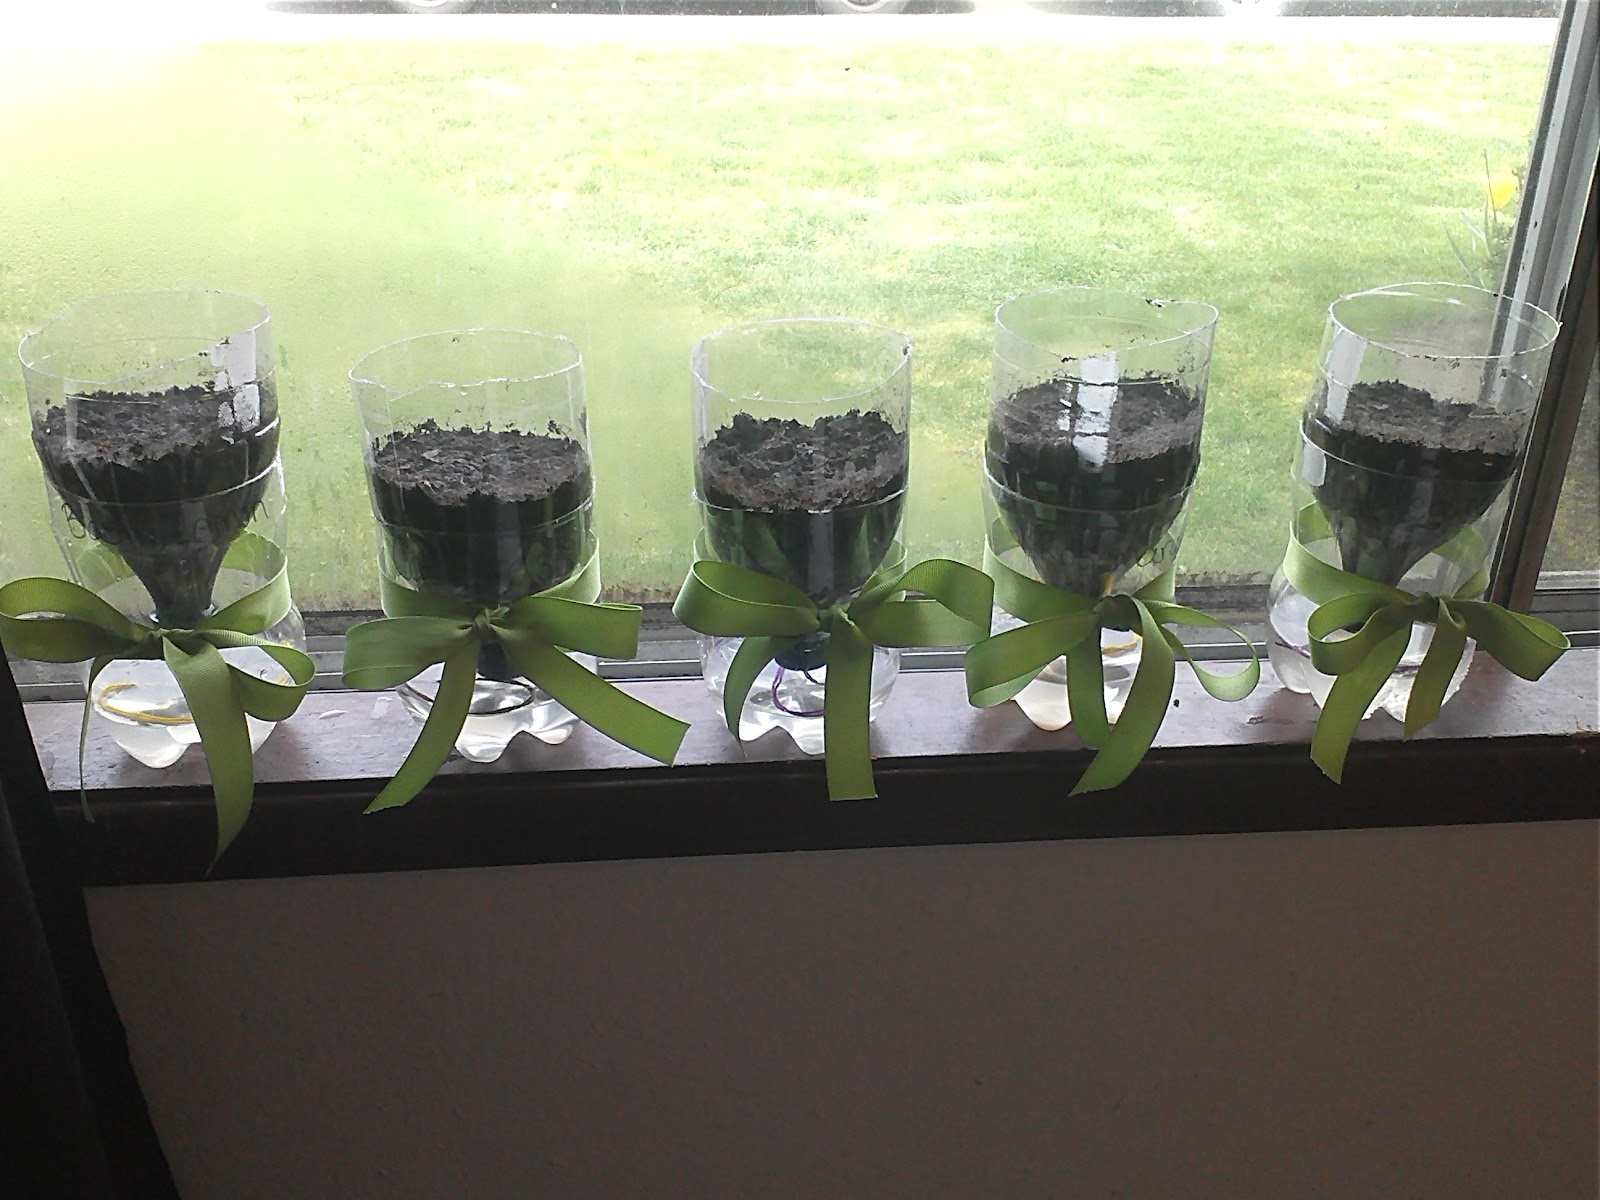 Blissfully blessed diy self watering plant containers - Diy self watering container garden ...